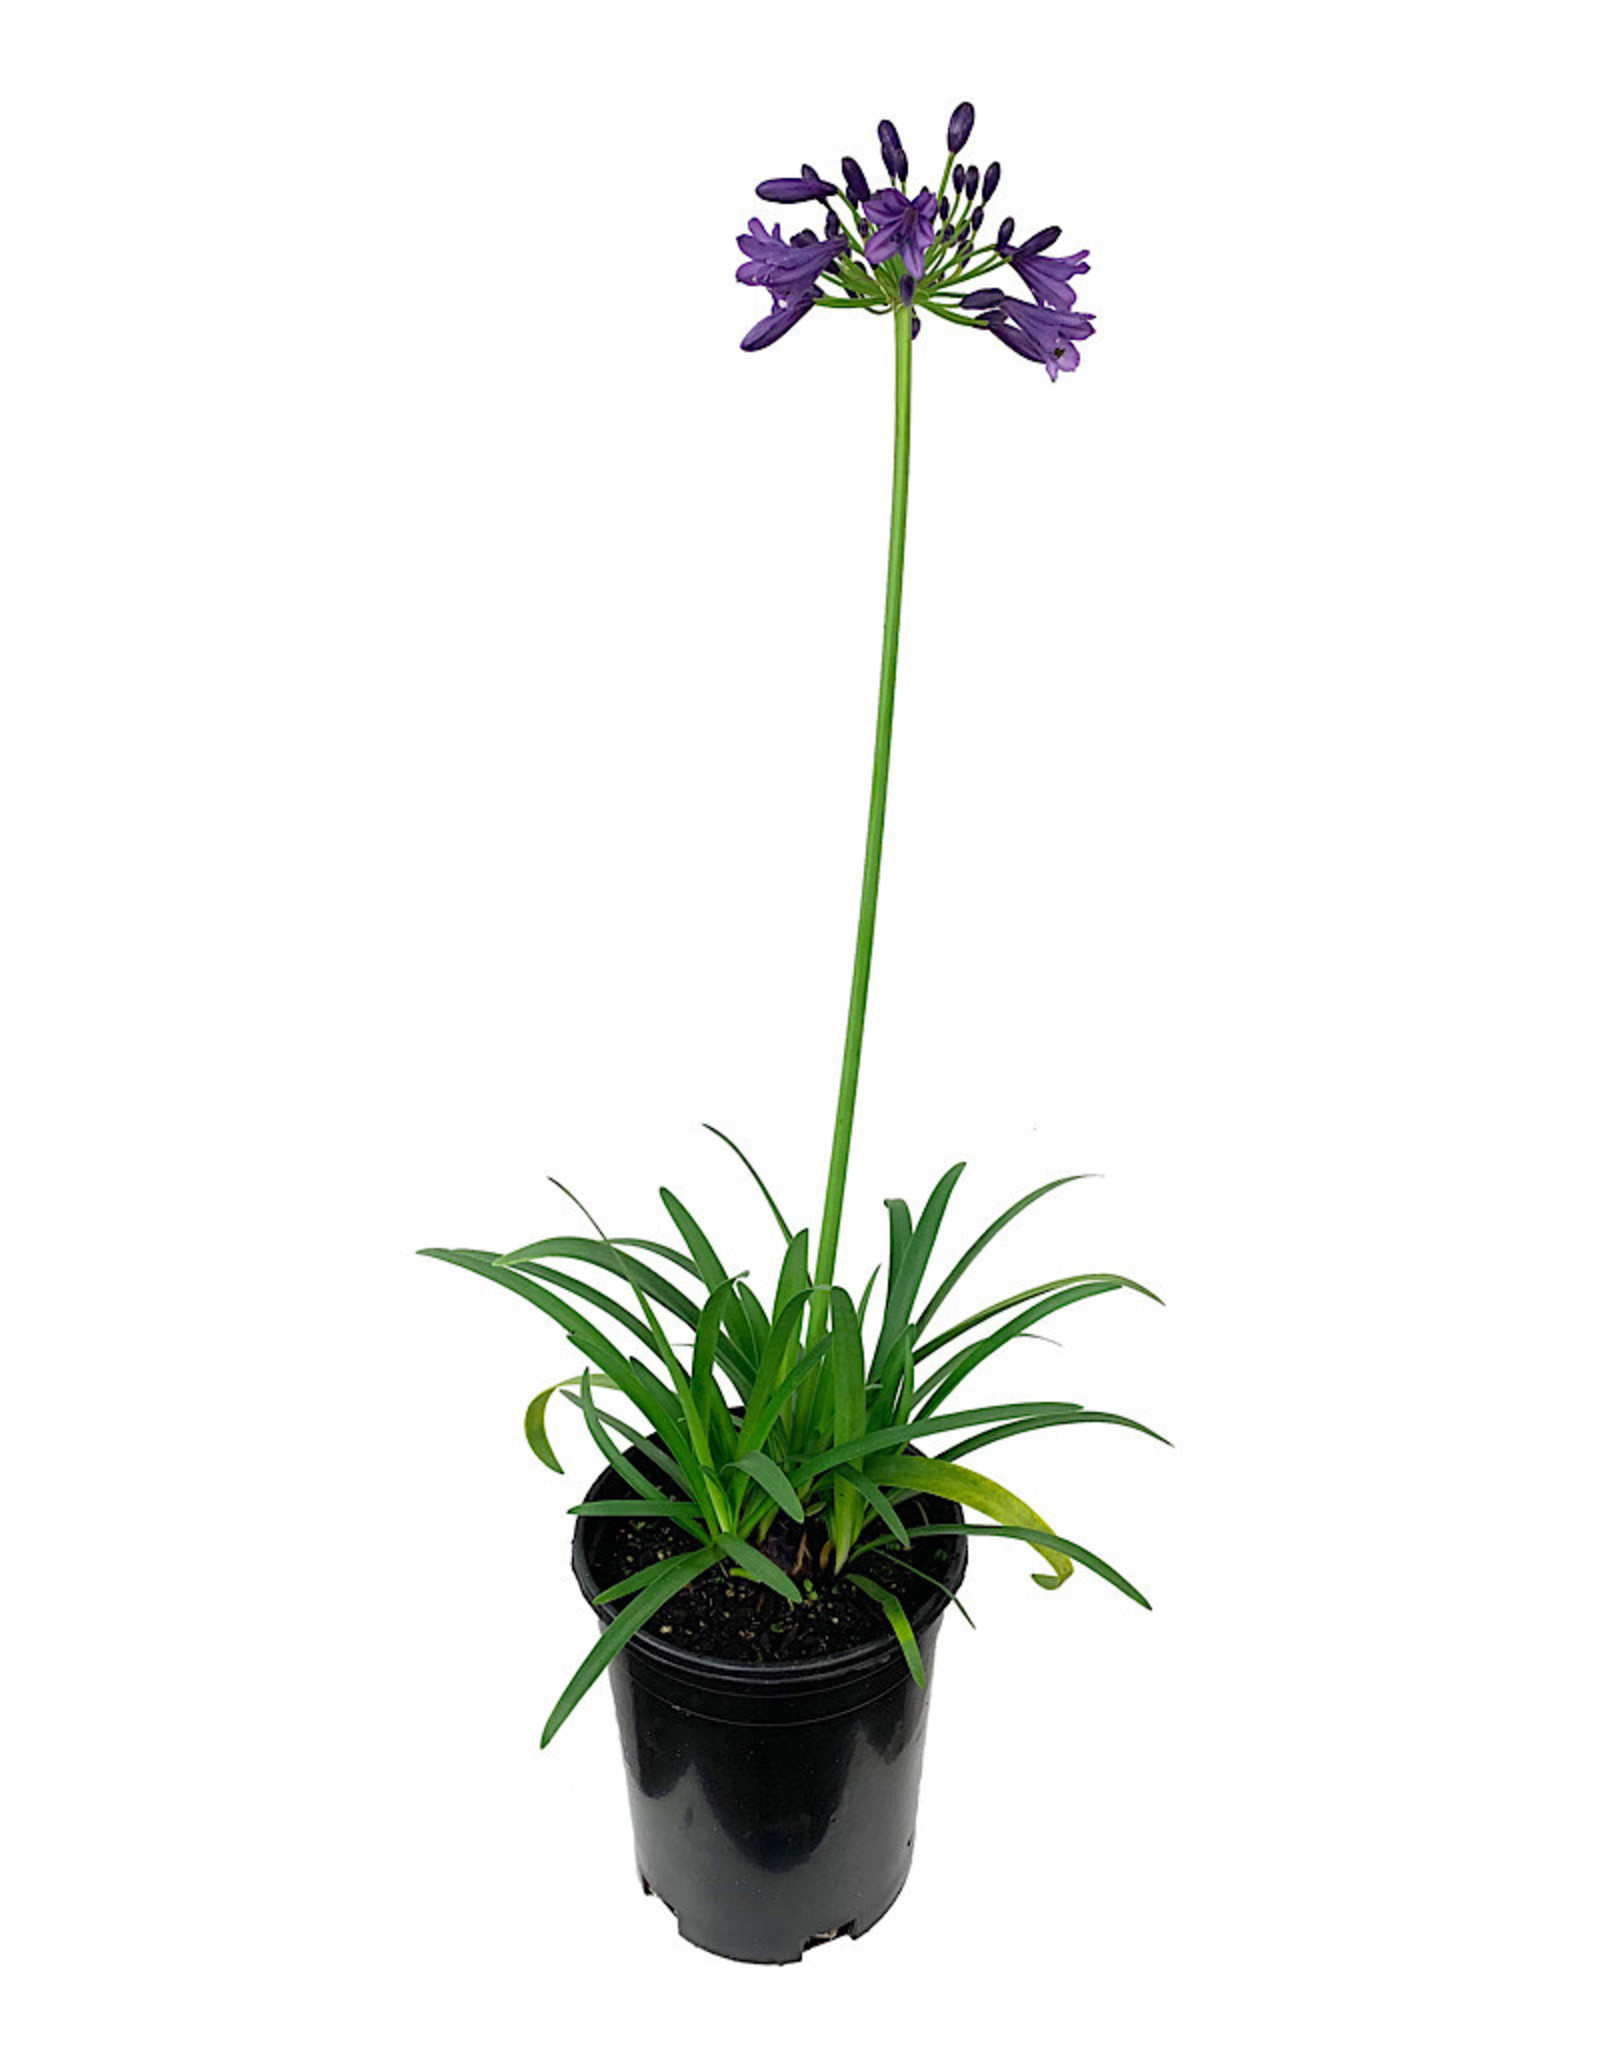 Agapanthus 'Ever Amethyst' 1 Gallon